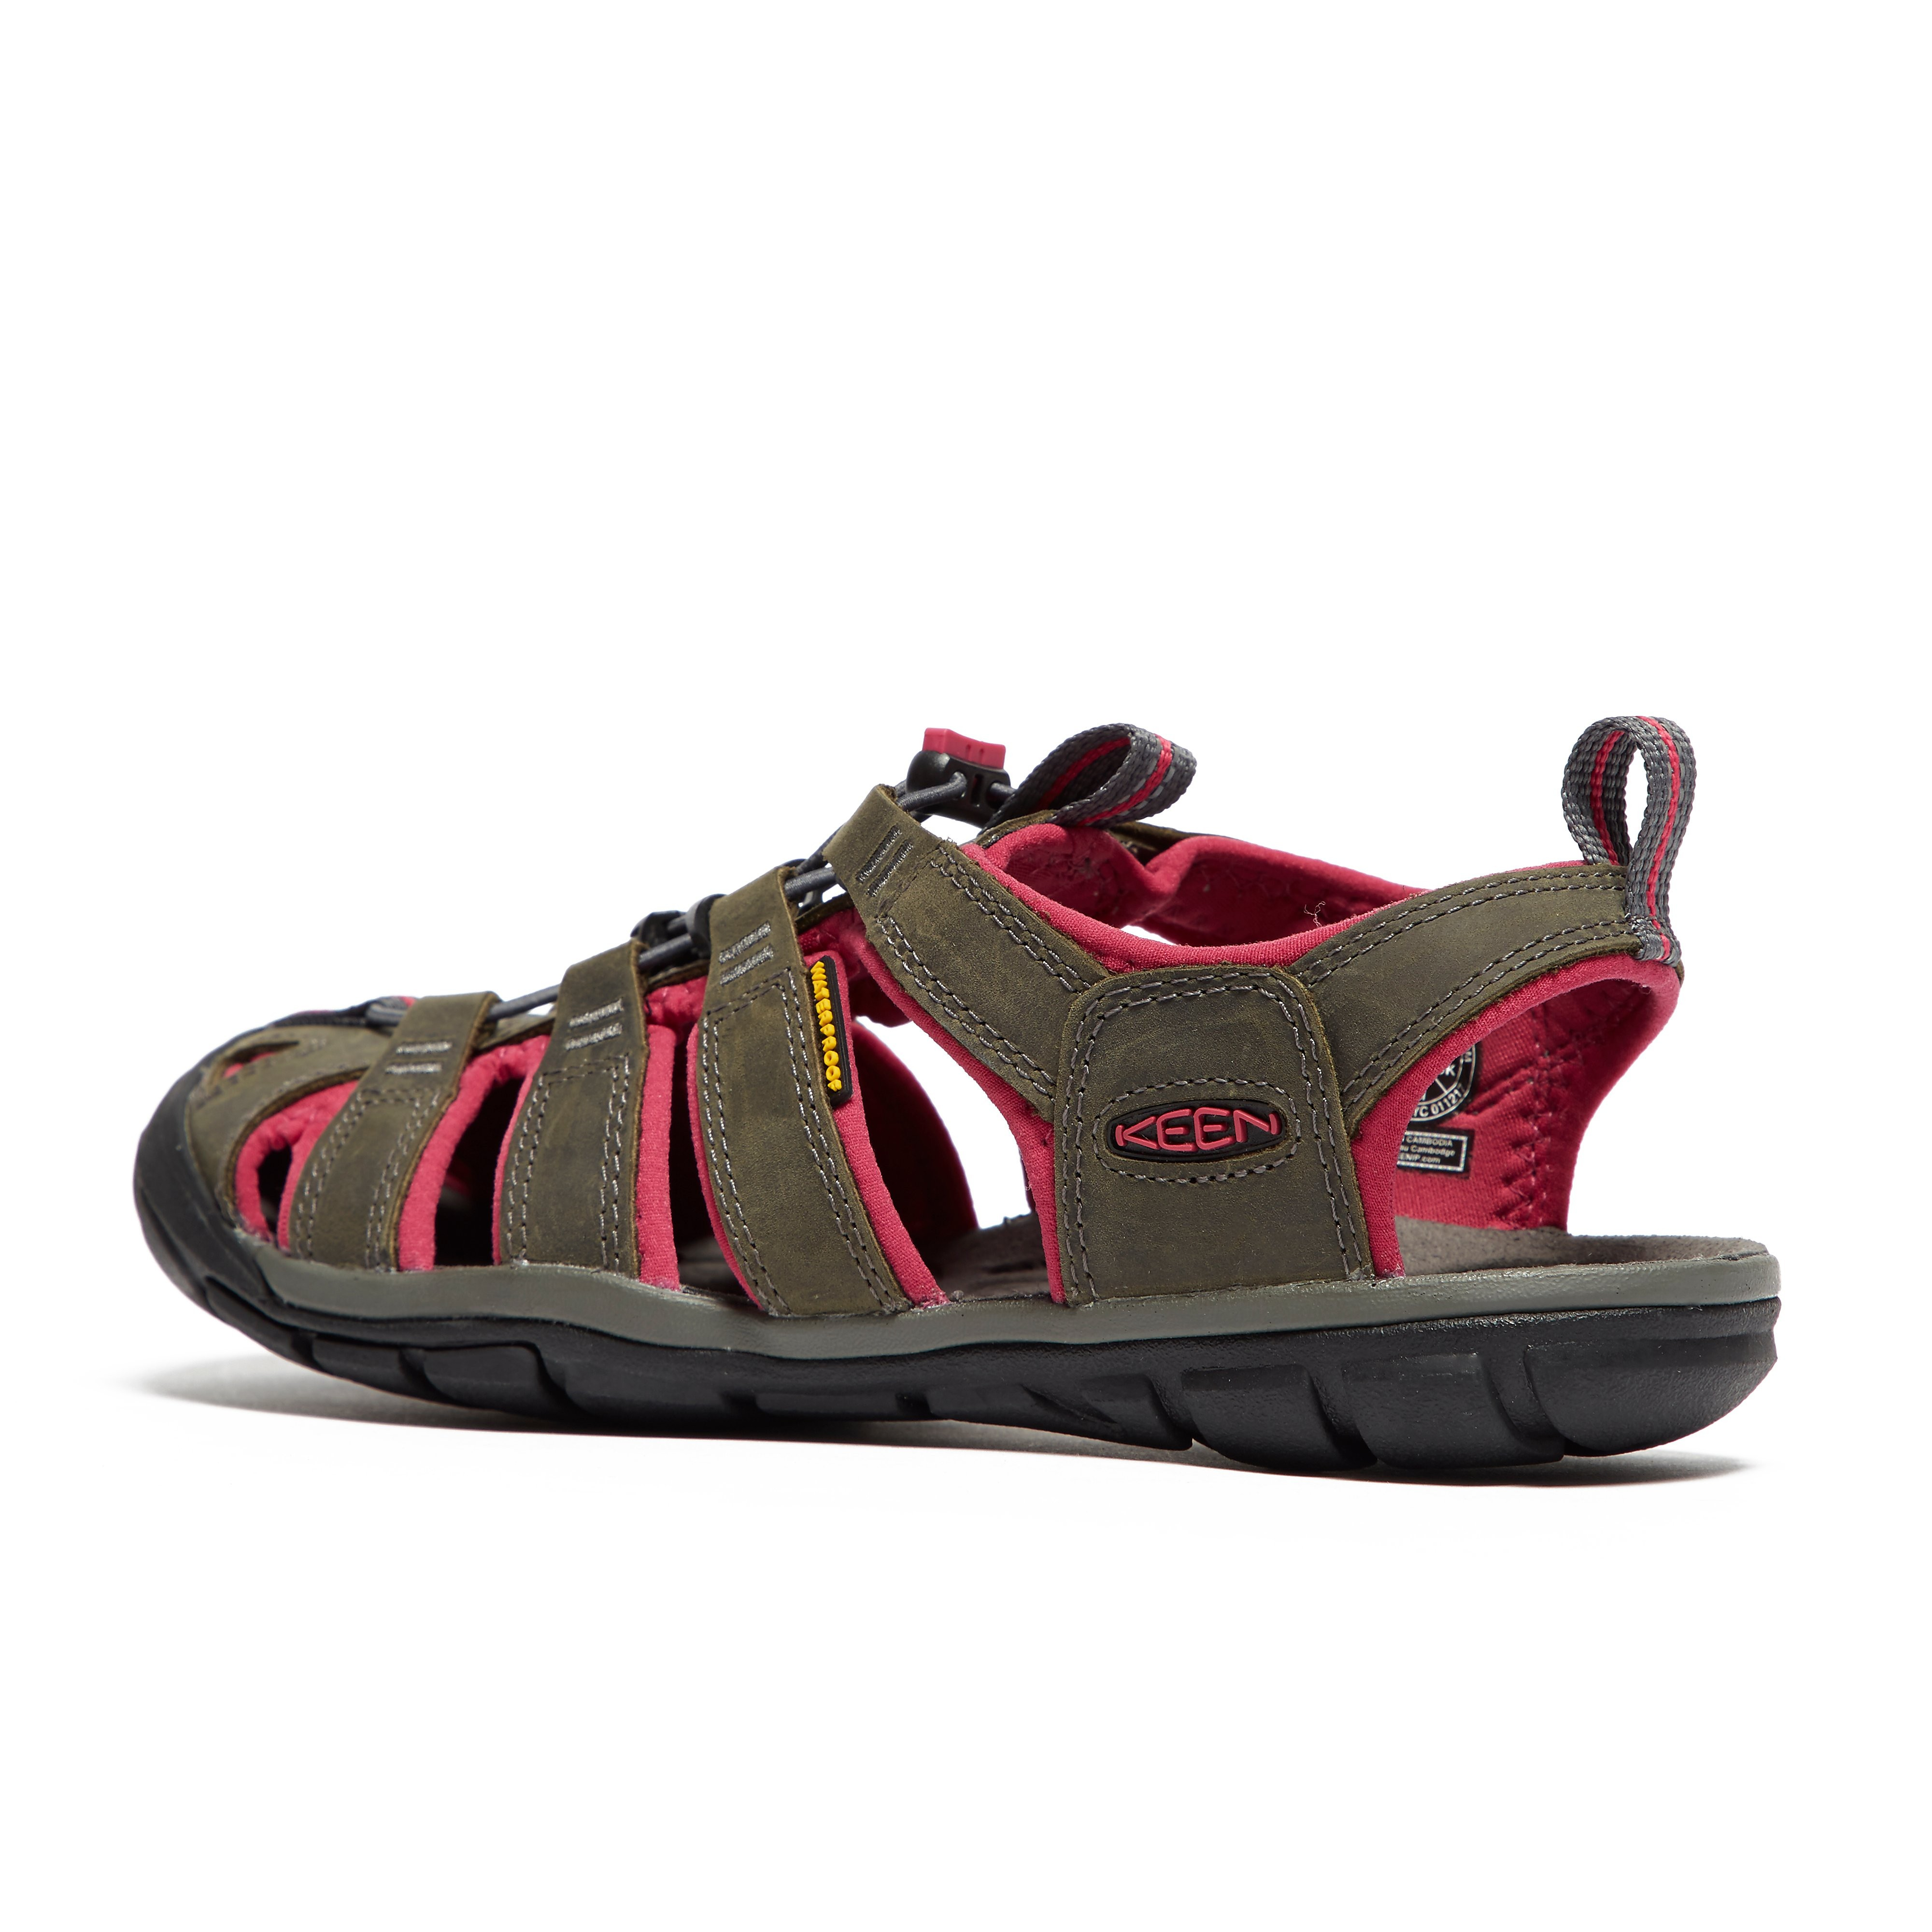 Keen Clearwater Leather CNX Women's Walking Sandals